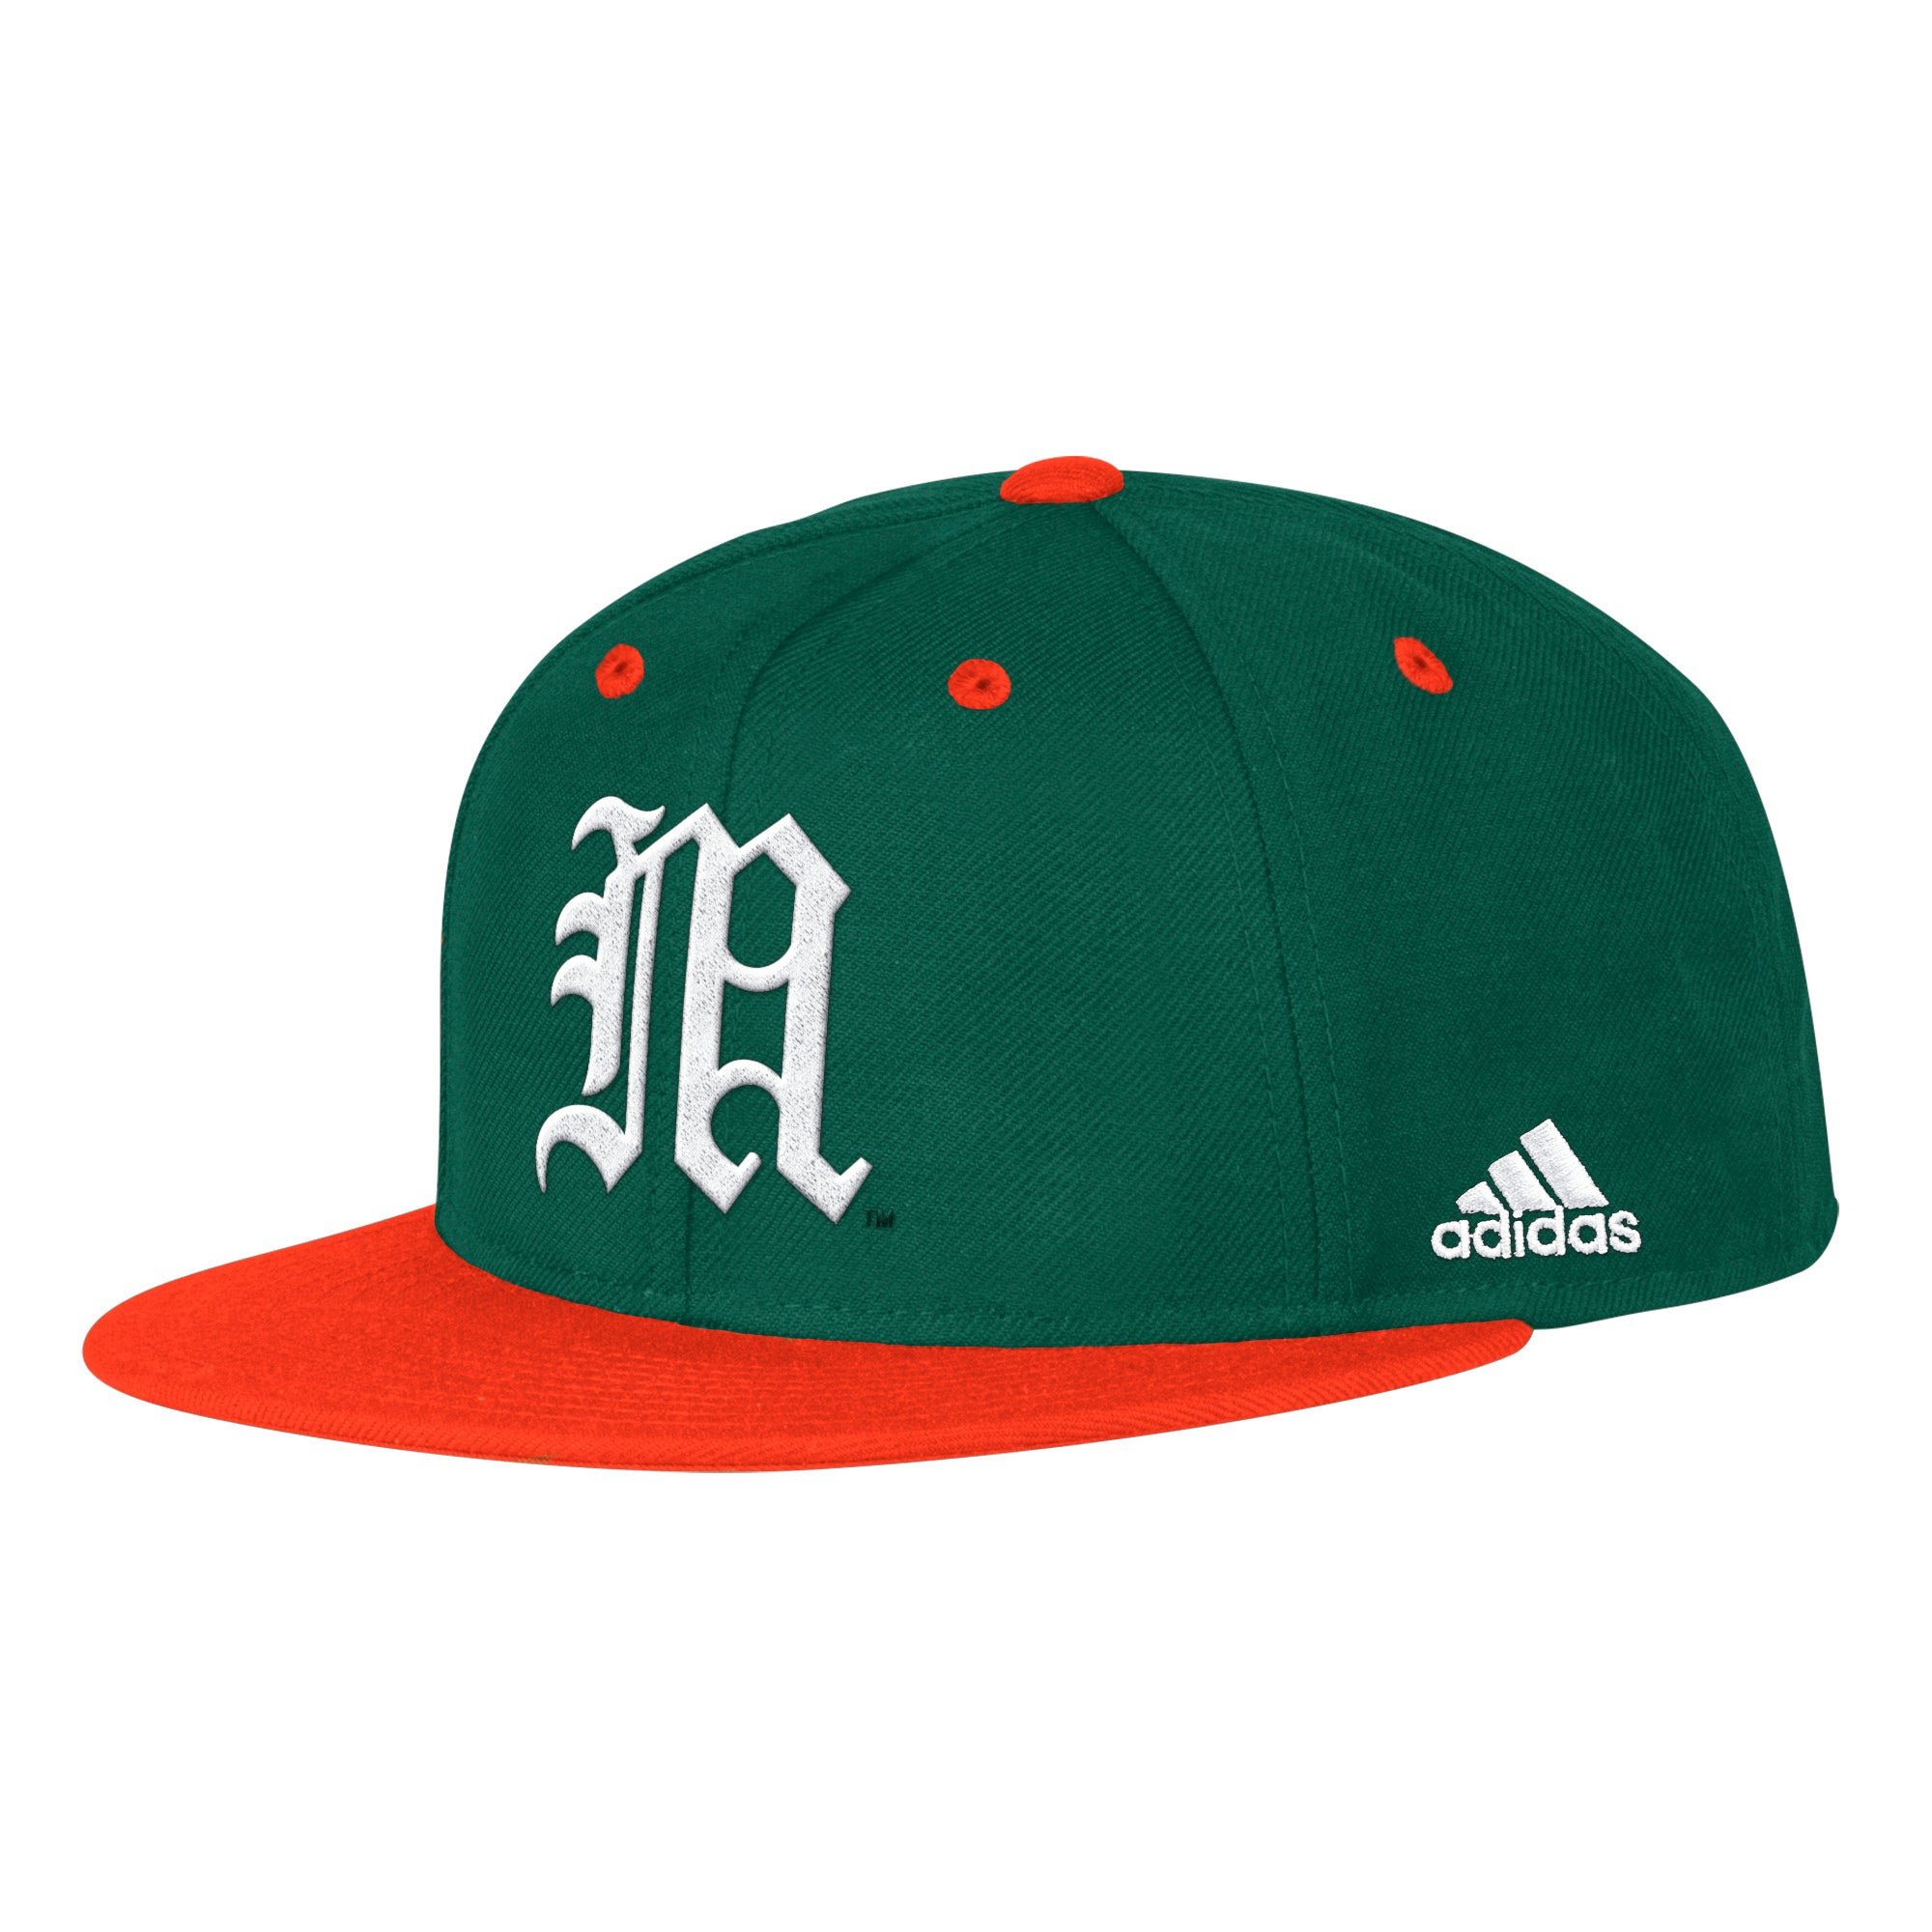 936481a6c3787 Miami Hurricanes adidas 2019 On Field Fitted Baseball Hat - Green ...